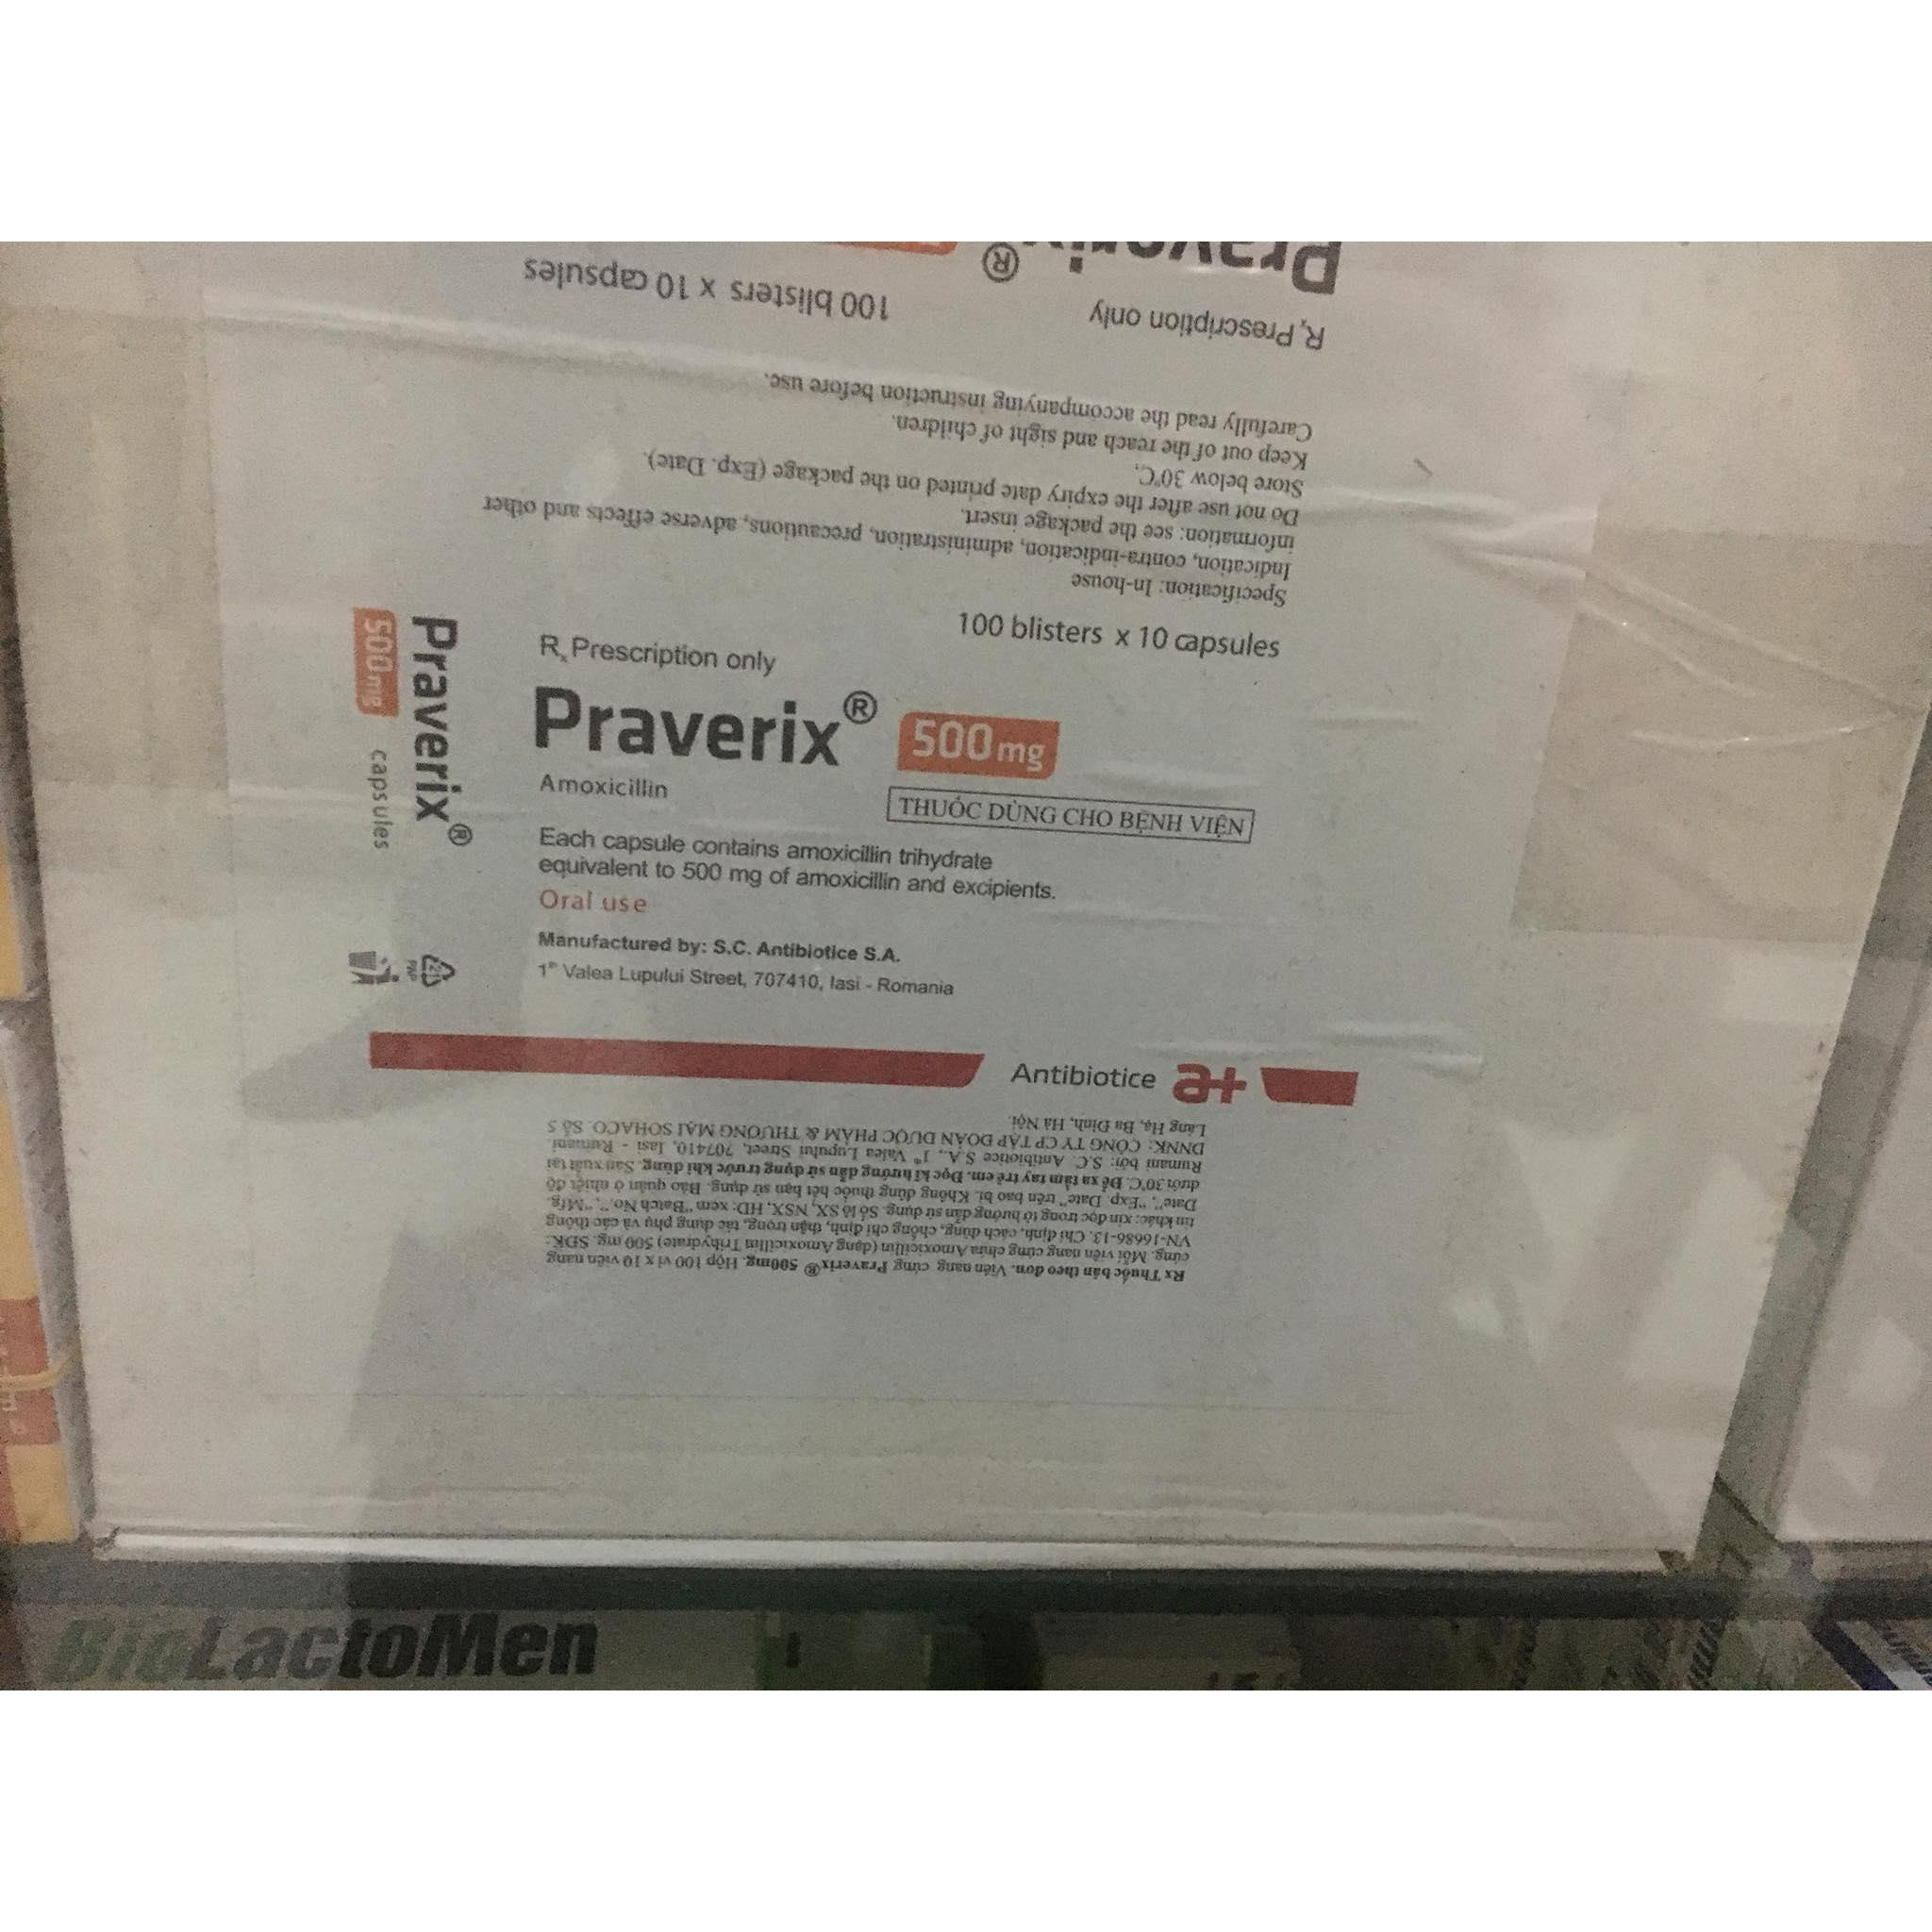 Praverix 500mg